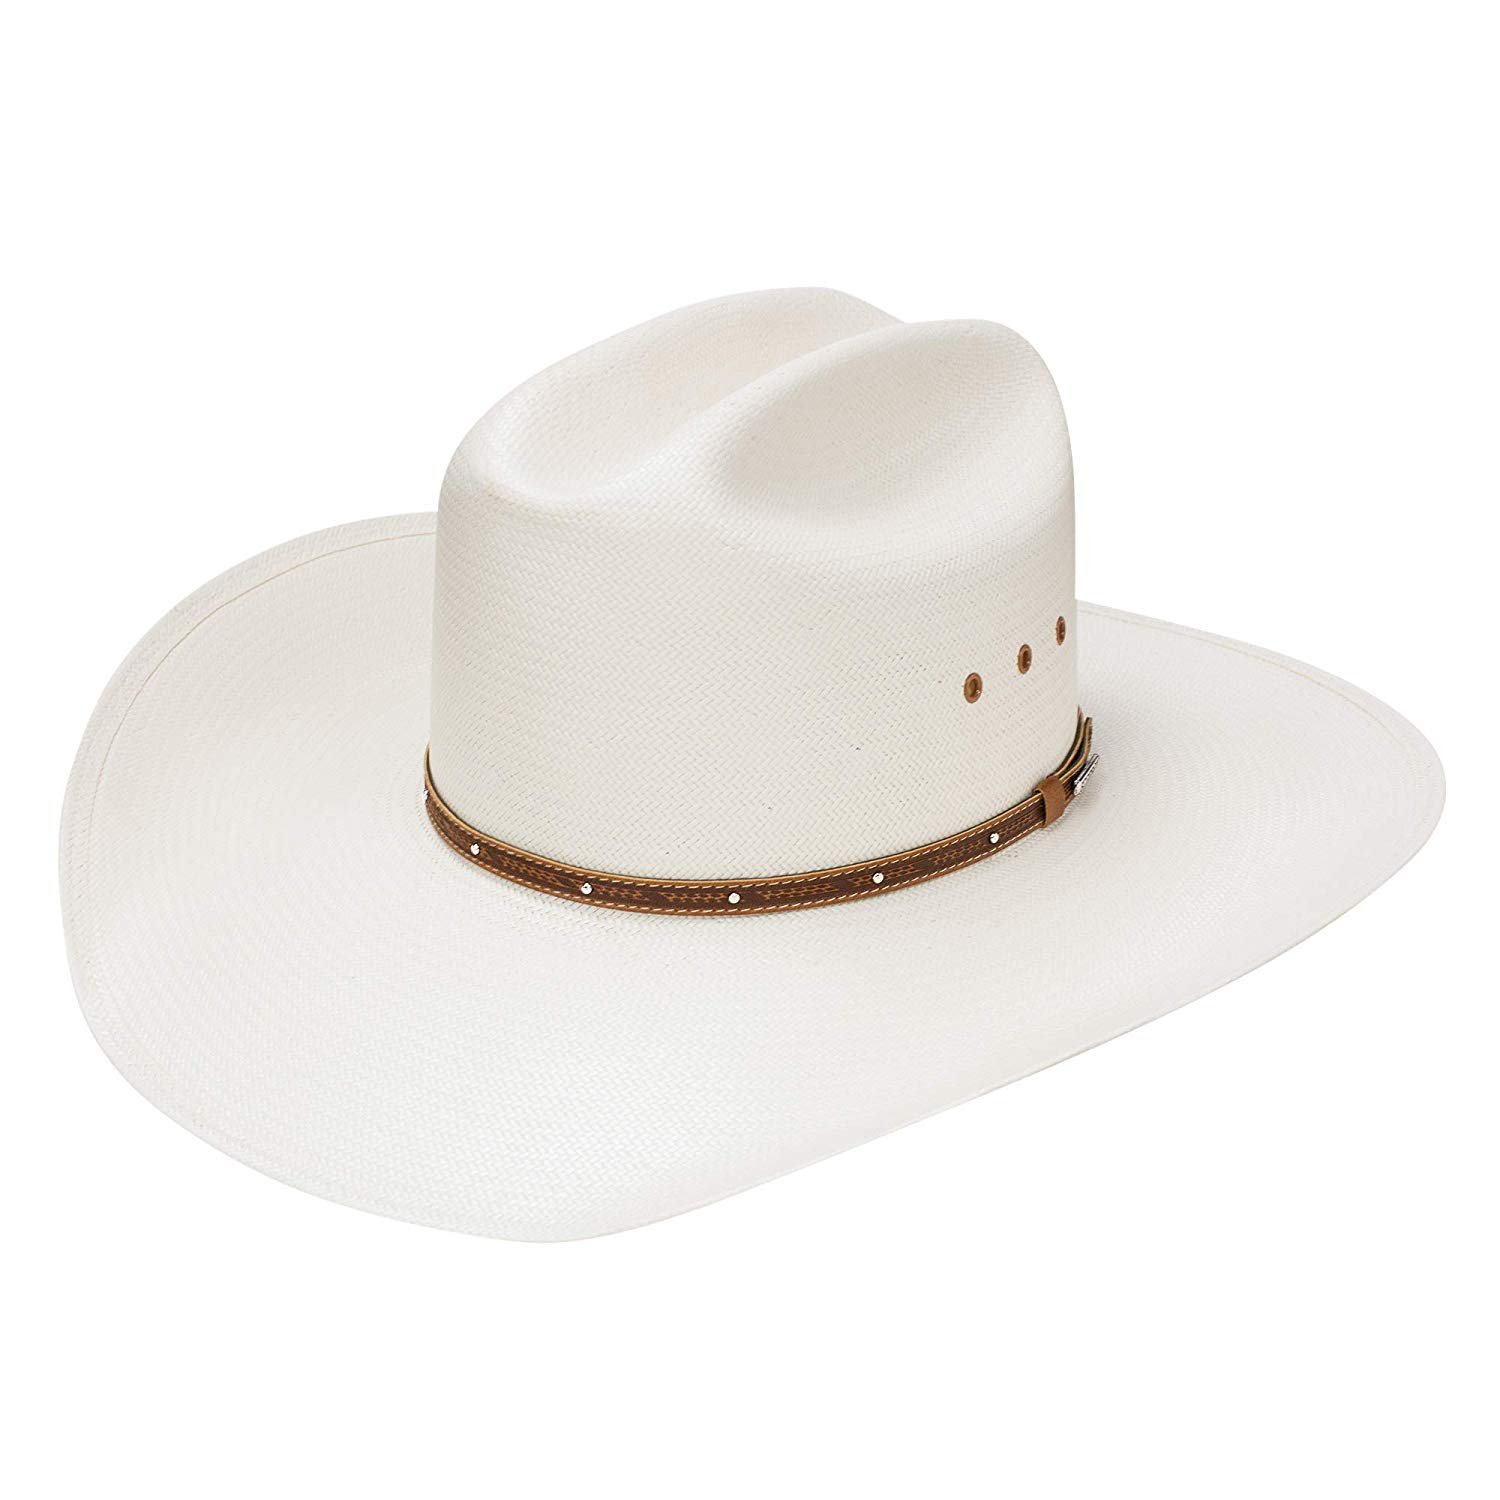 595bdcd3c08f6 Details about Stetson 10X Stanhope Natural Cowboy Hat Size 7 1 8